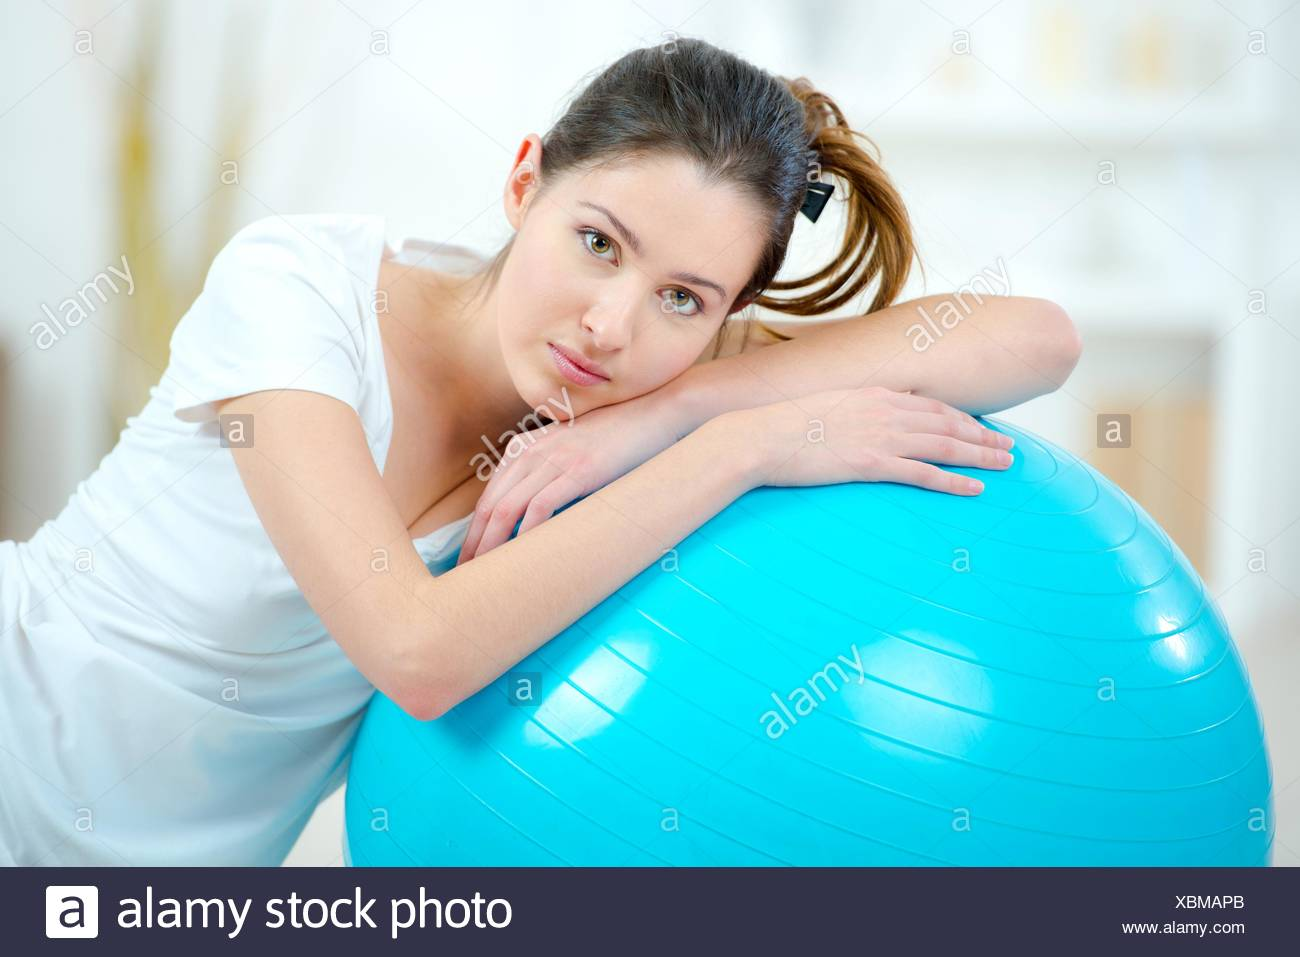 Girl leaning on ball aérobie Photo Stock